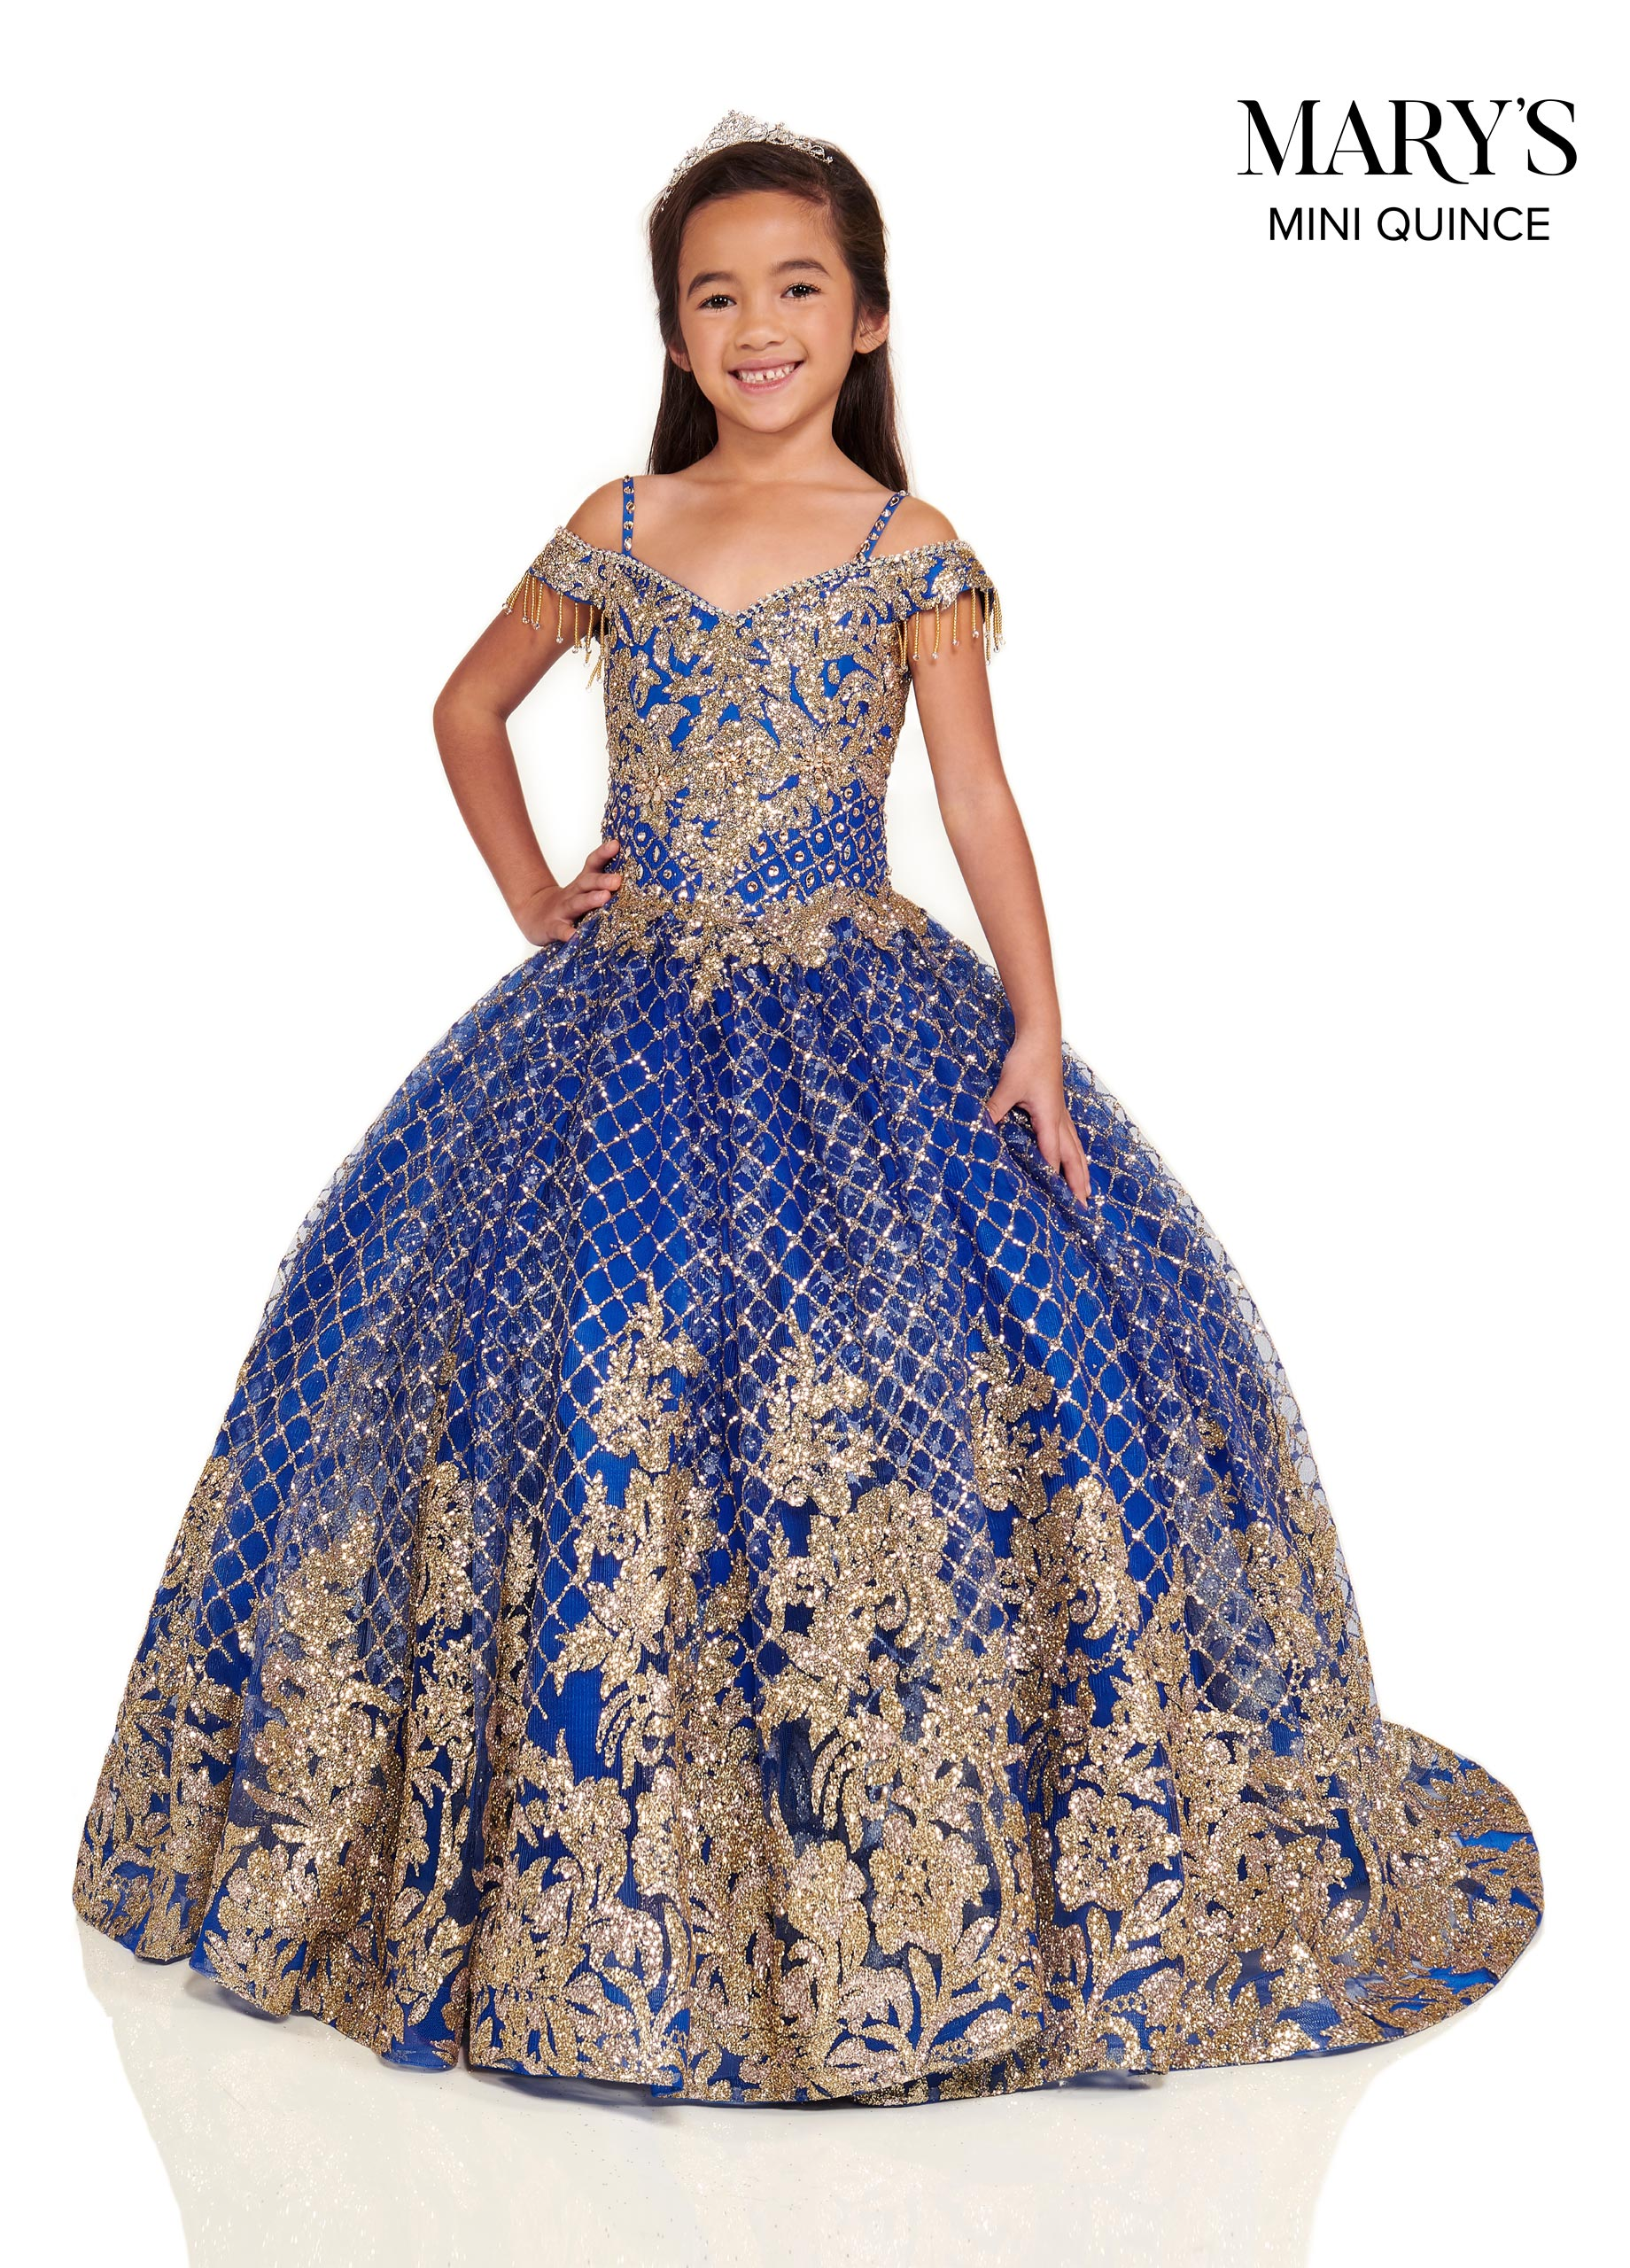 Little Quince Dresses | Mini Quince | Style - MQ4027